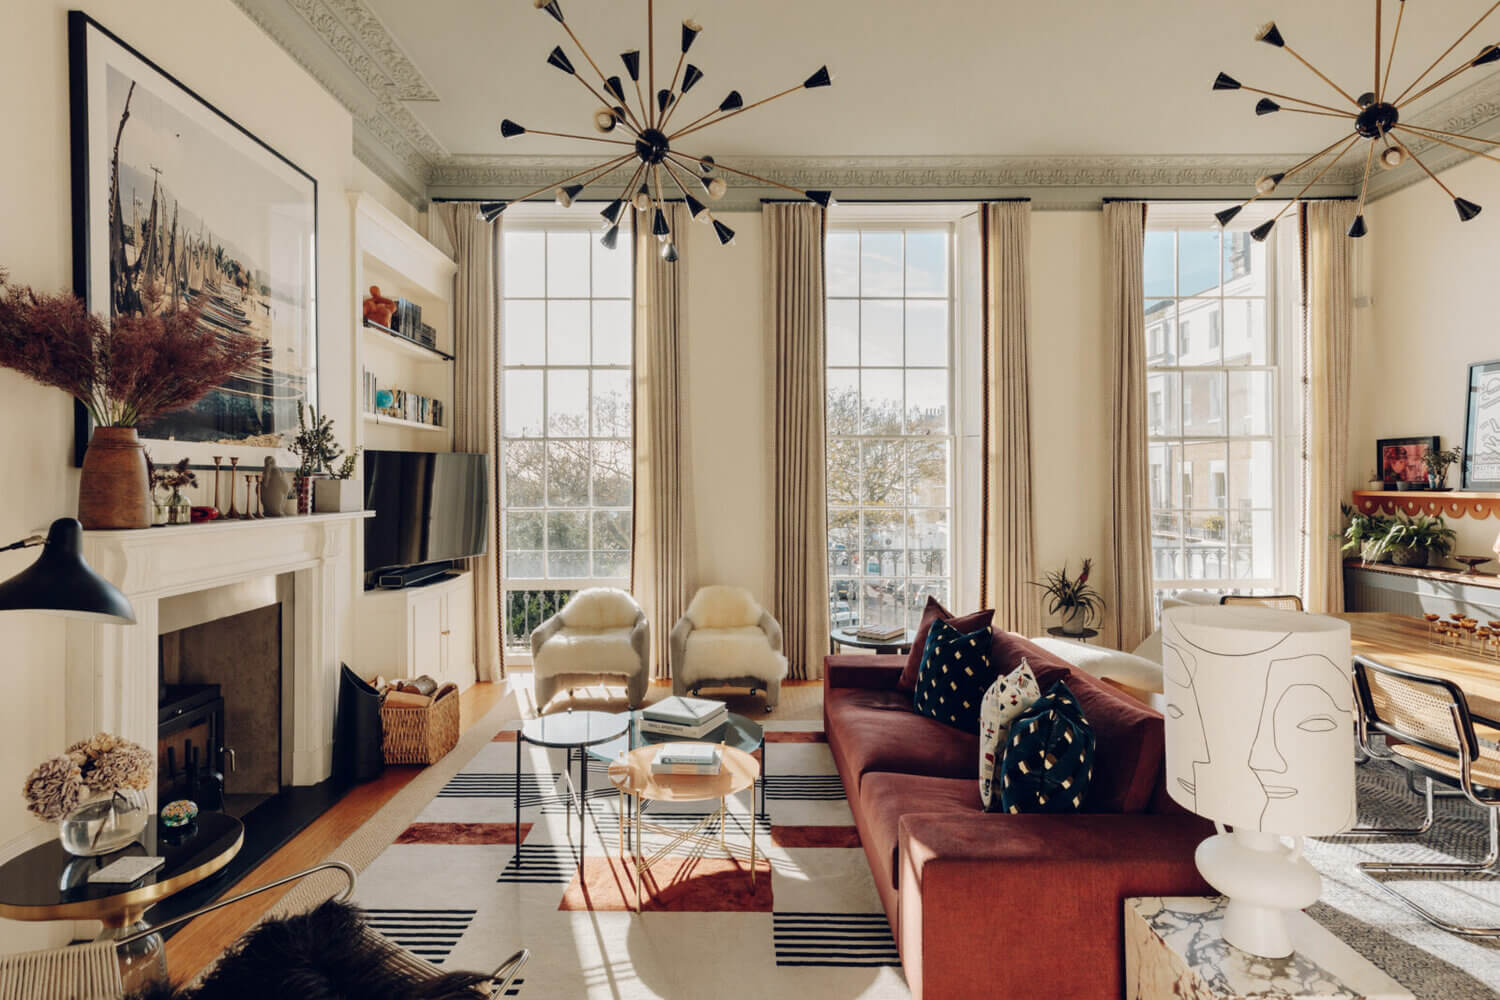 An Eclectic Apartment in a Historic Townhouse in Brighton